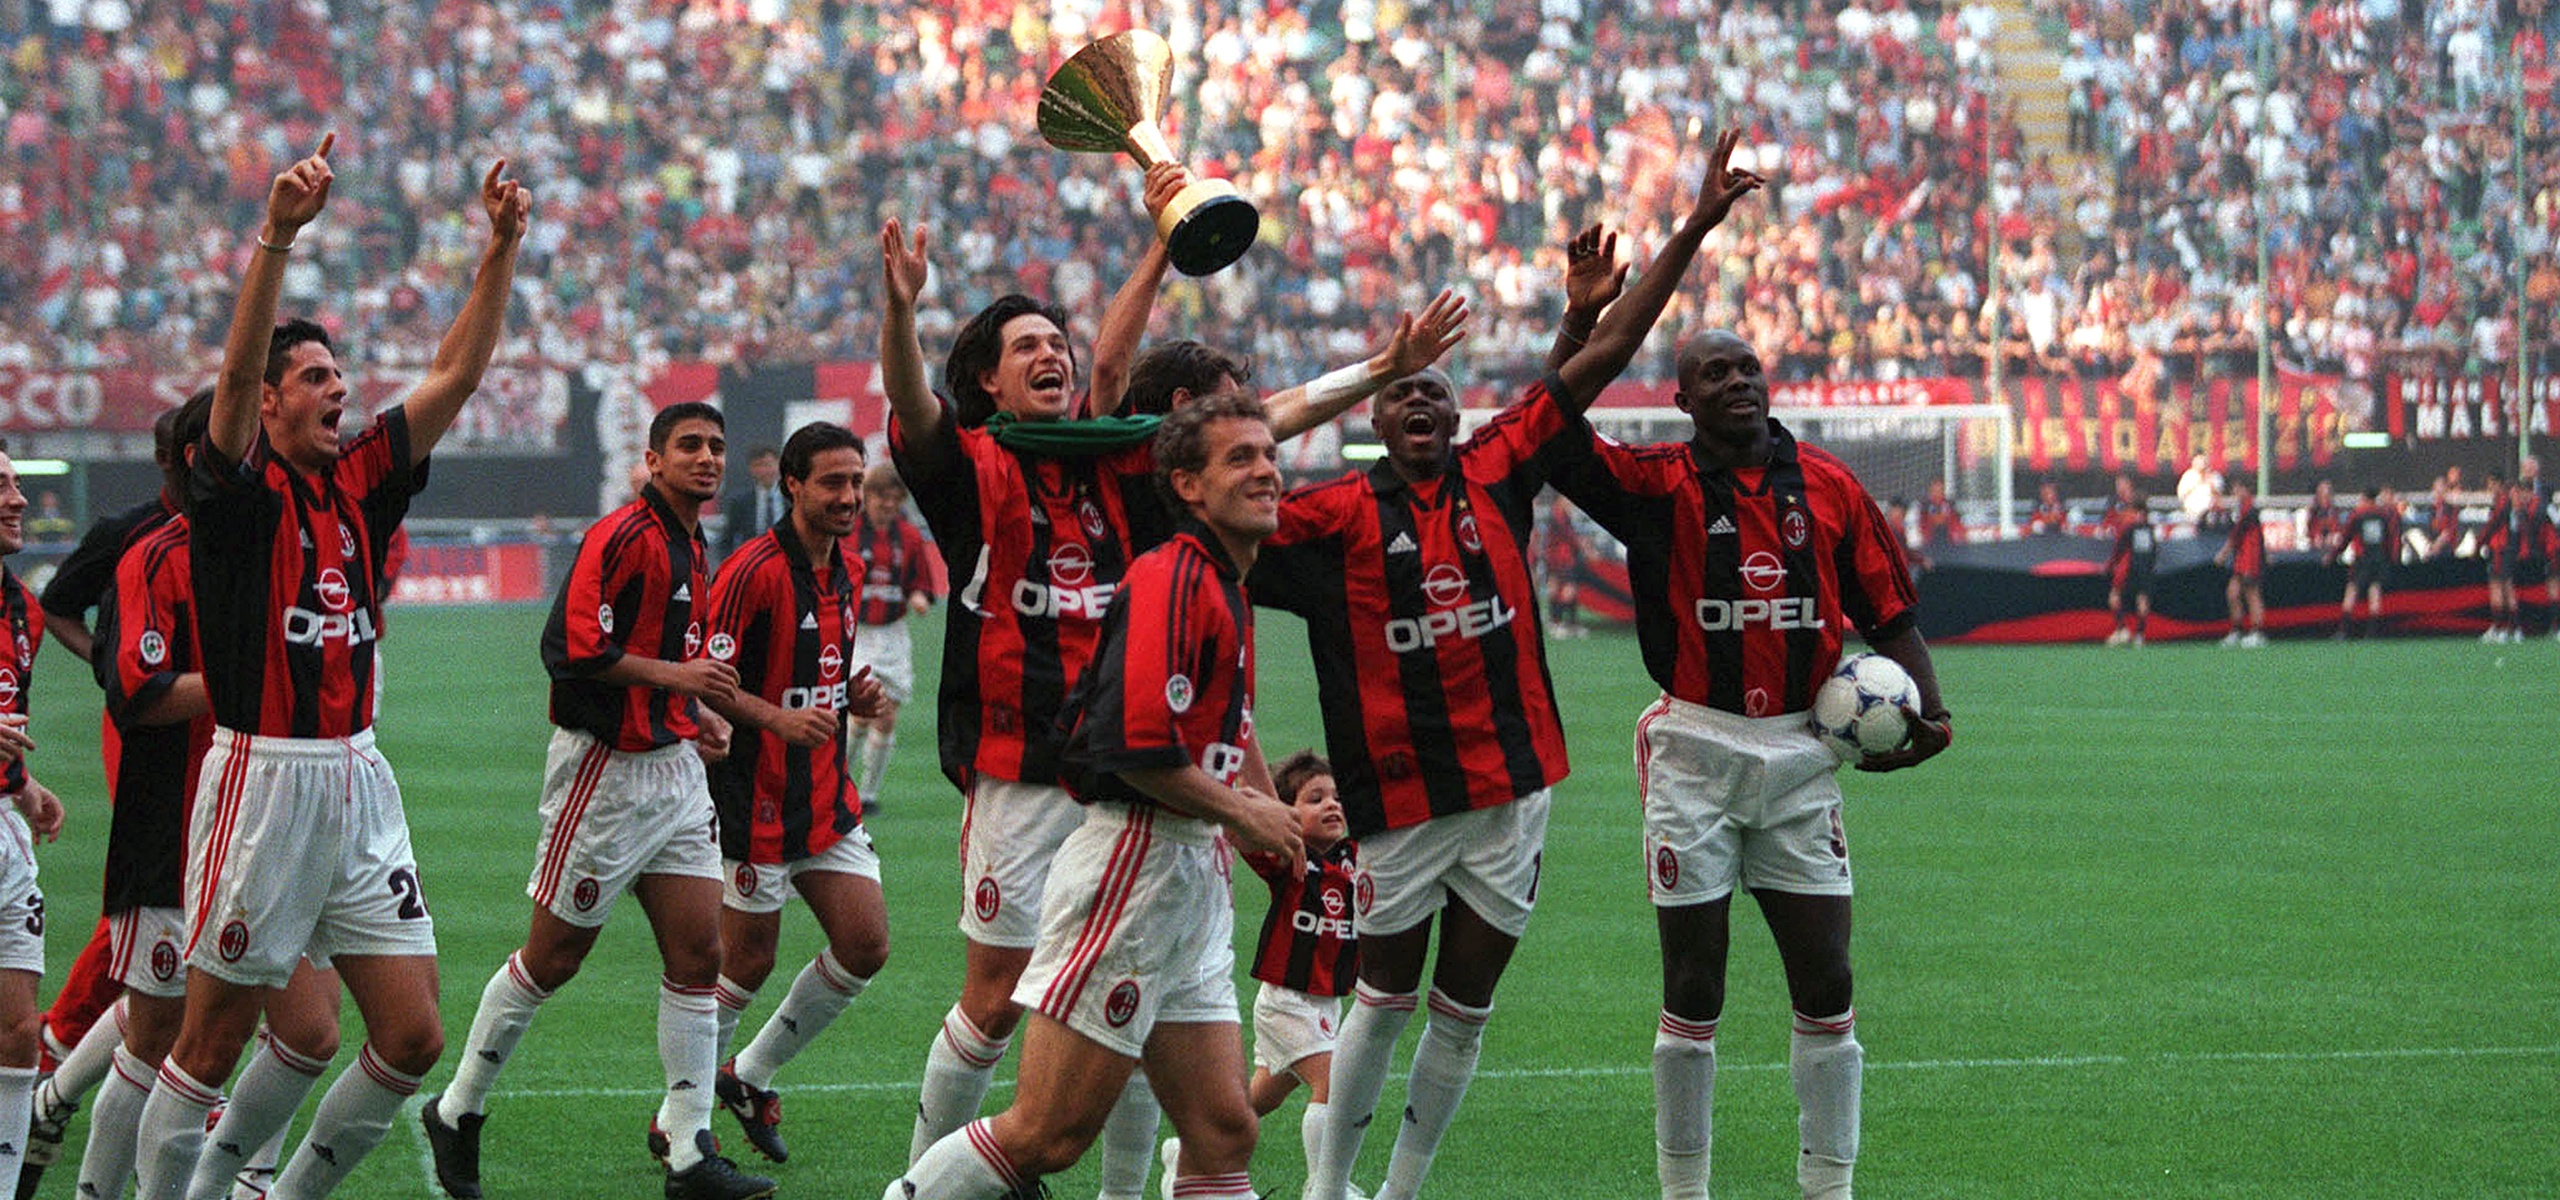 1998/99 Scudetto: all details | AC Milan